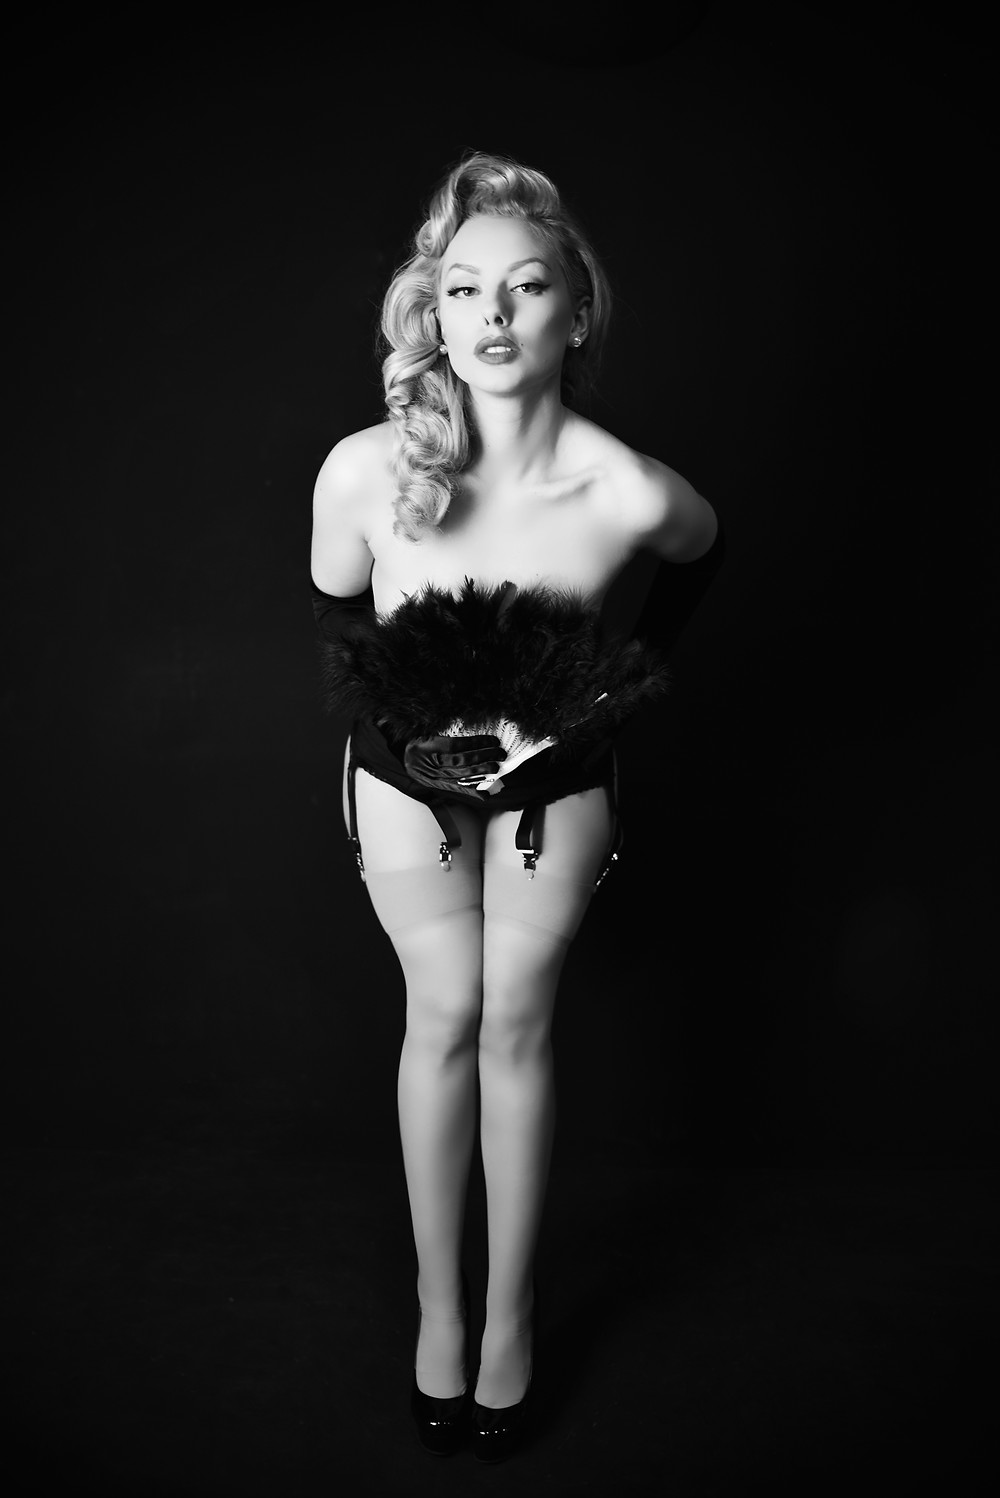 Heather Valentine Pin Up Model Burlesque Photo Shoot by Paulina Czochra Photography